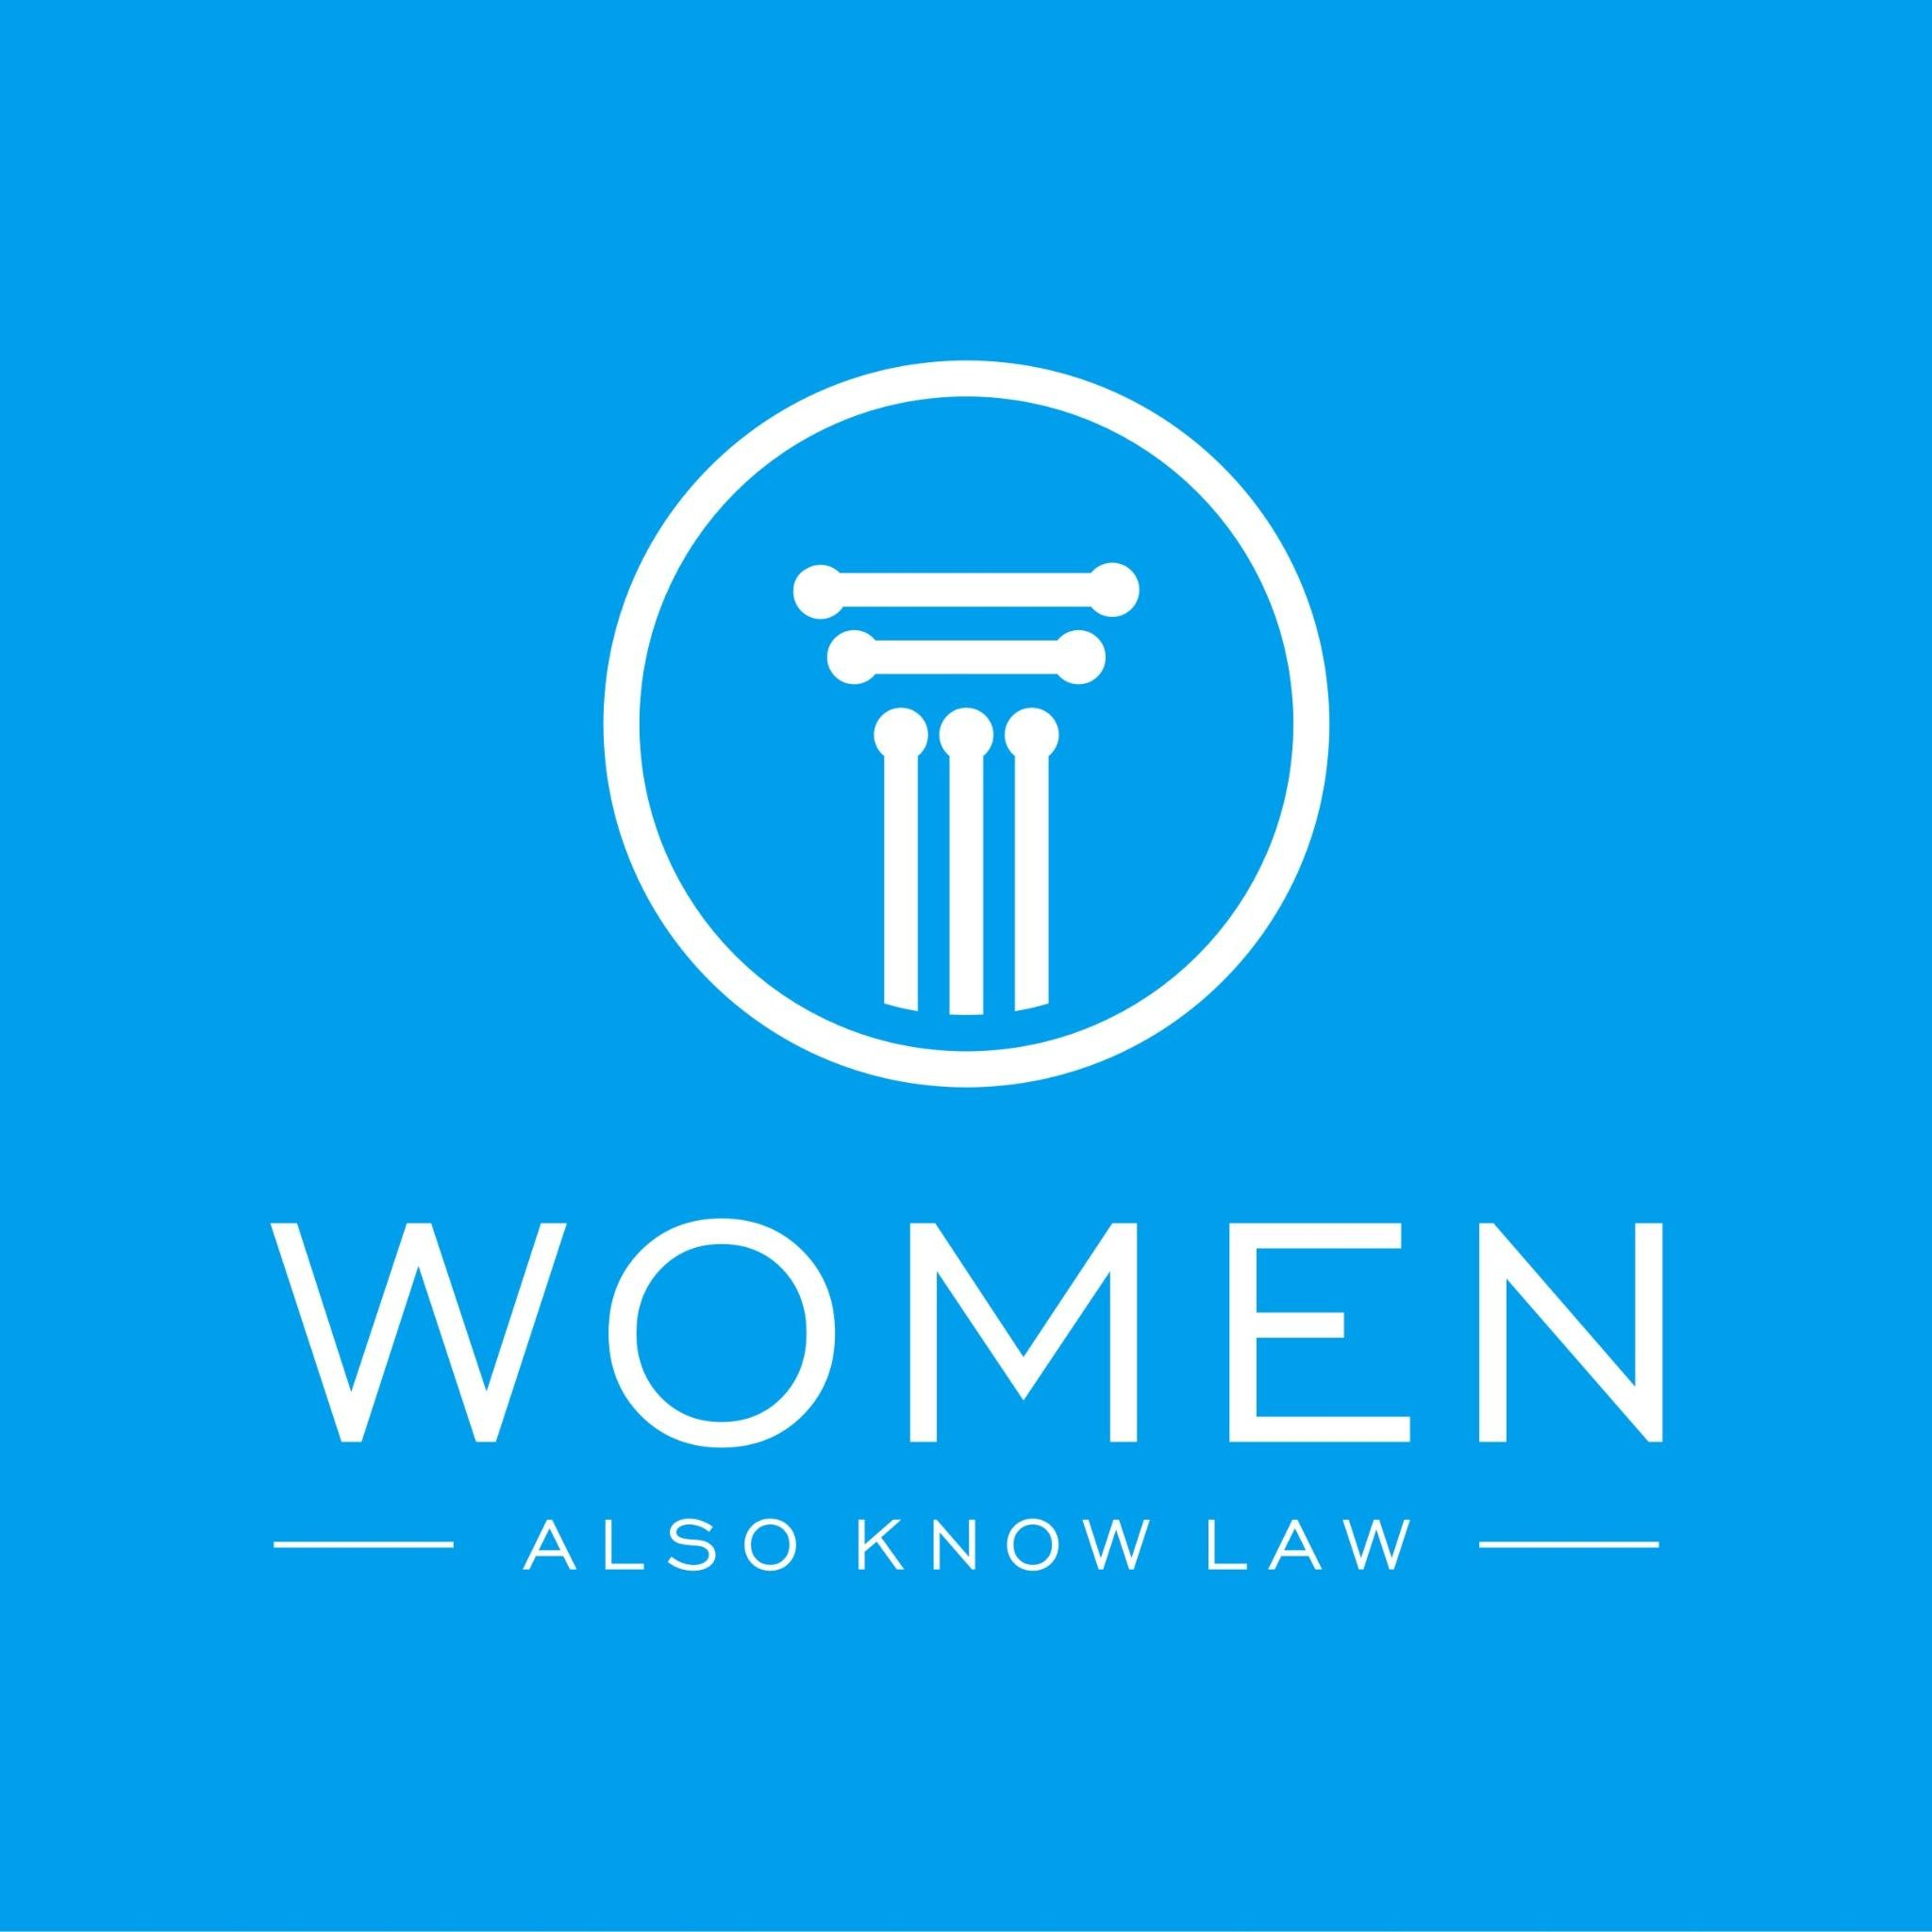 Women Also Know Law